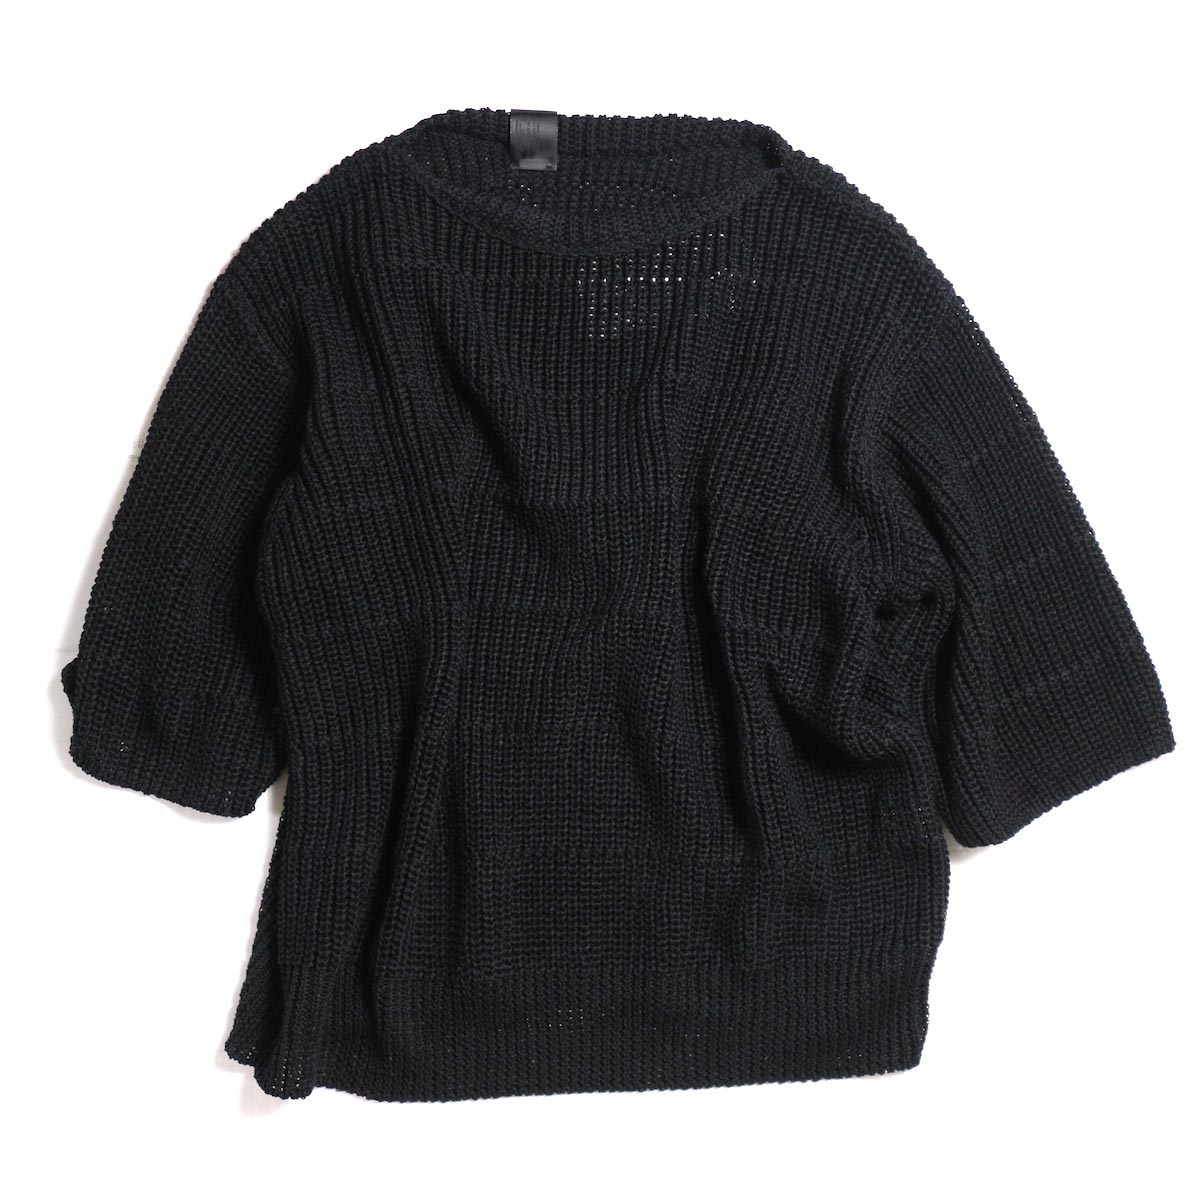 N.HOOLYWOOD / 281-KT02-027 S/S SUMMER KNIT -BLACK